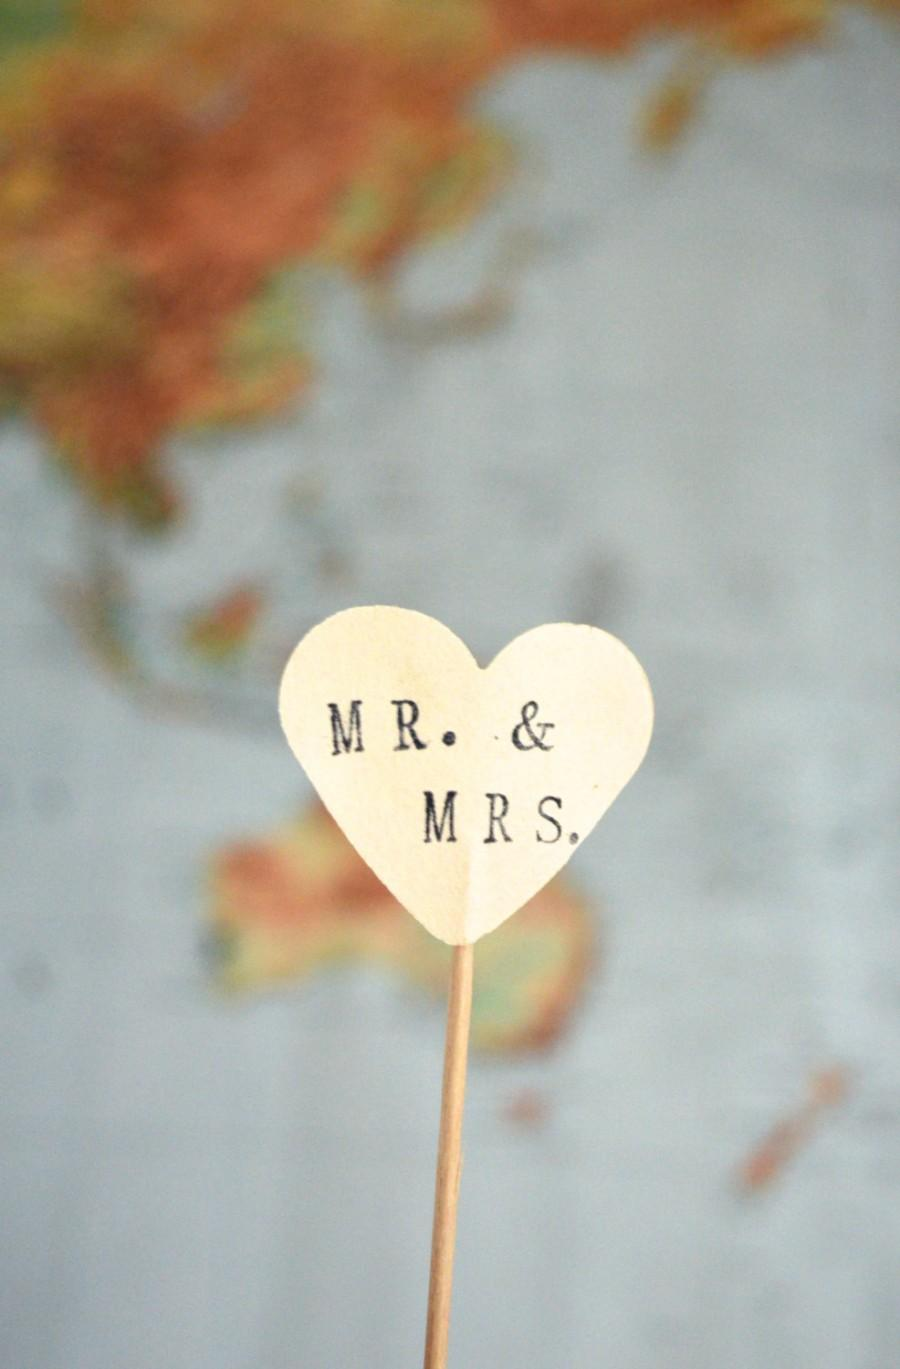 Hochzeit - MR. & MRS. cupcake toppers, 12 hand stamped picks - the ORIGINAL handstamped hearts in vintage, red, pink or white